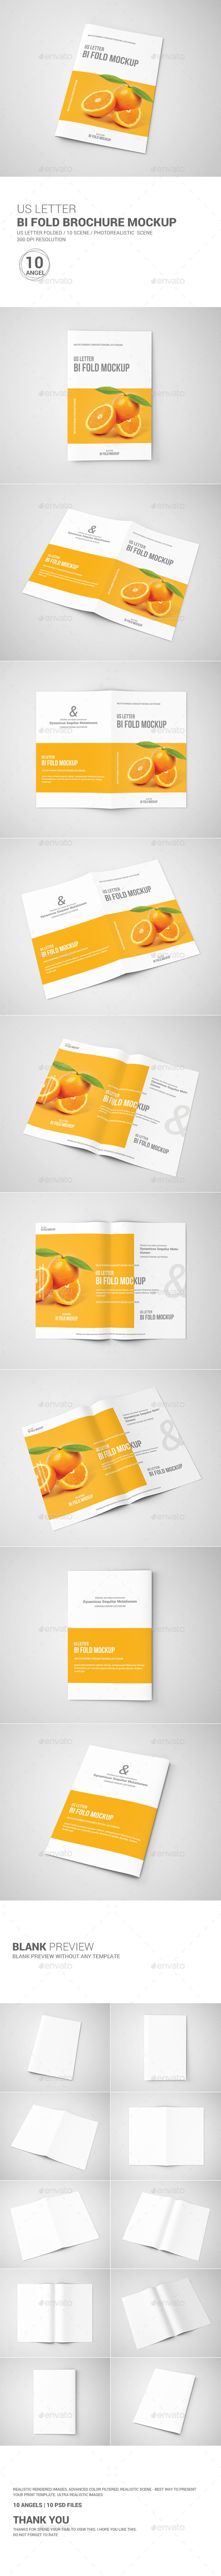 GraphicRiver Bi-Fold Brochure Mock-Up US Letter 10637895